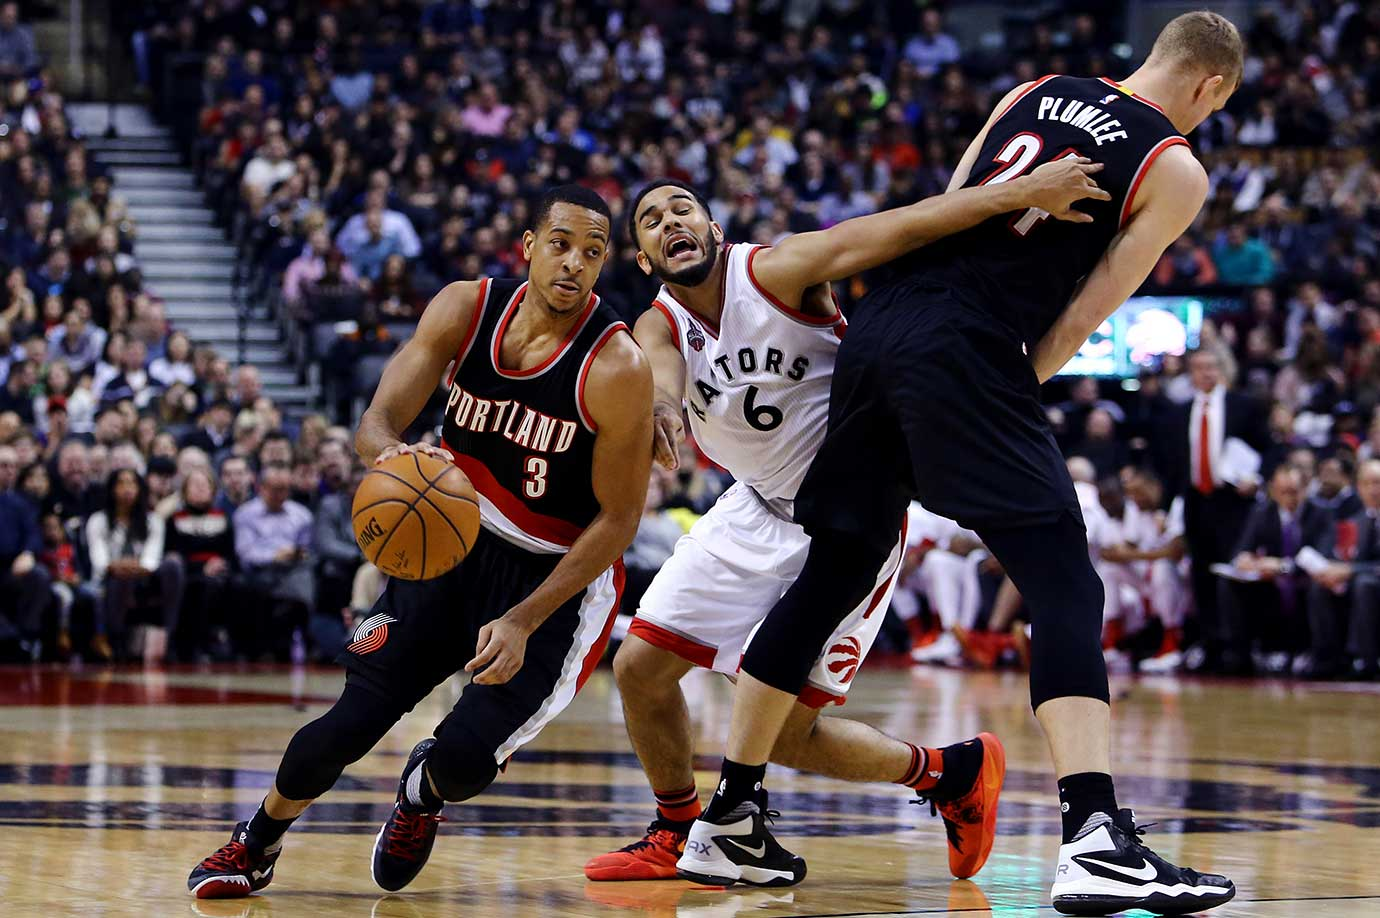 CJ McCollum of Portland dribbles the ball as Cory Joseph of Toronto is screened.